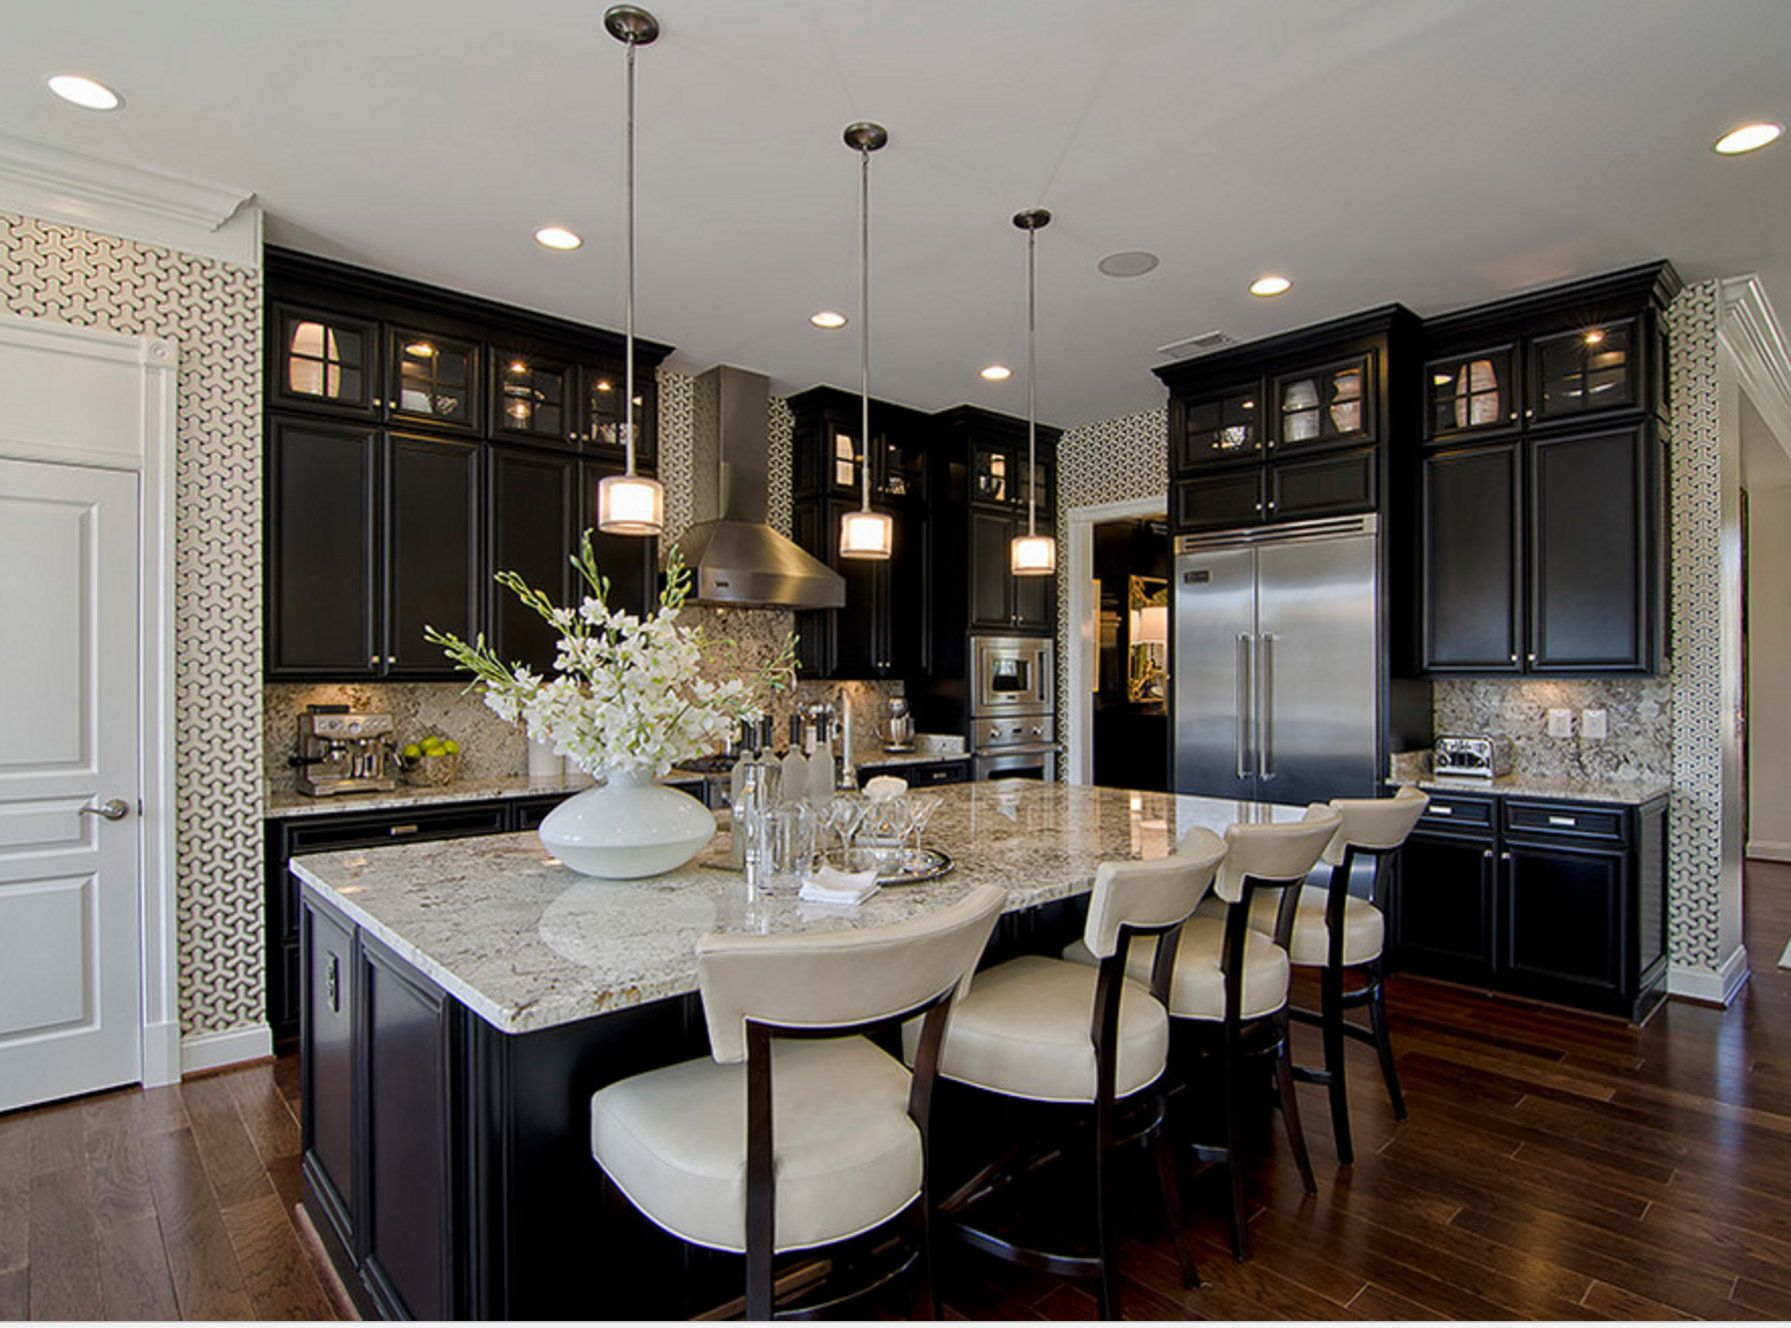 Kitchen paint colors with black cabinets - Most popular cabinet paint colors